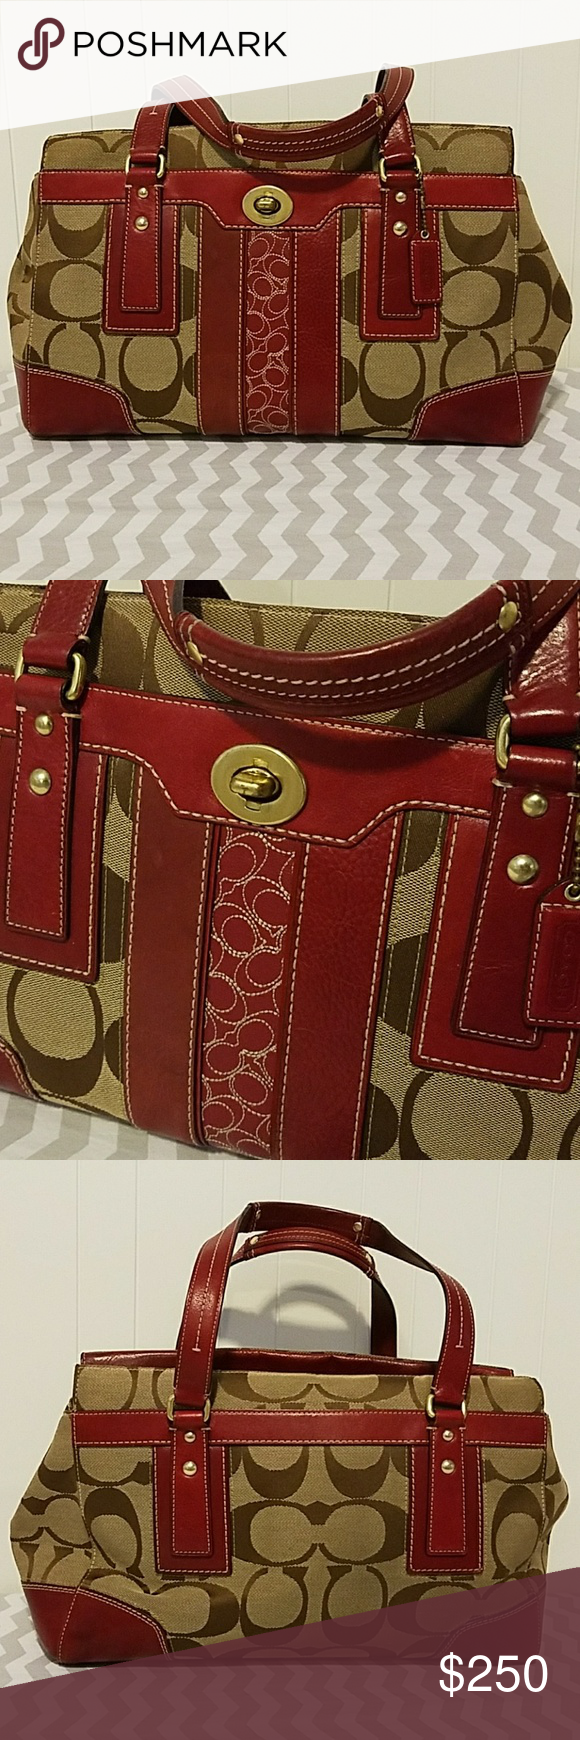 Coach Hamptons Signature Stripe large carryall AUTHENTIC Coach carryall. Khaki/brown canvas with rare (limited) berry leather. Dark brown interior. Minimal signs of wear, just a few very minor, barely there, scuffs on leather portions. This is in GREAT CONDITION! Dust bag included. Reasonable offers accepted! Coach Bags Satchels